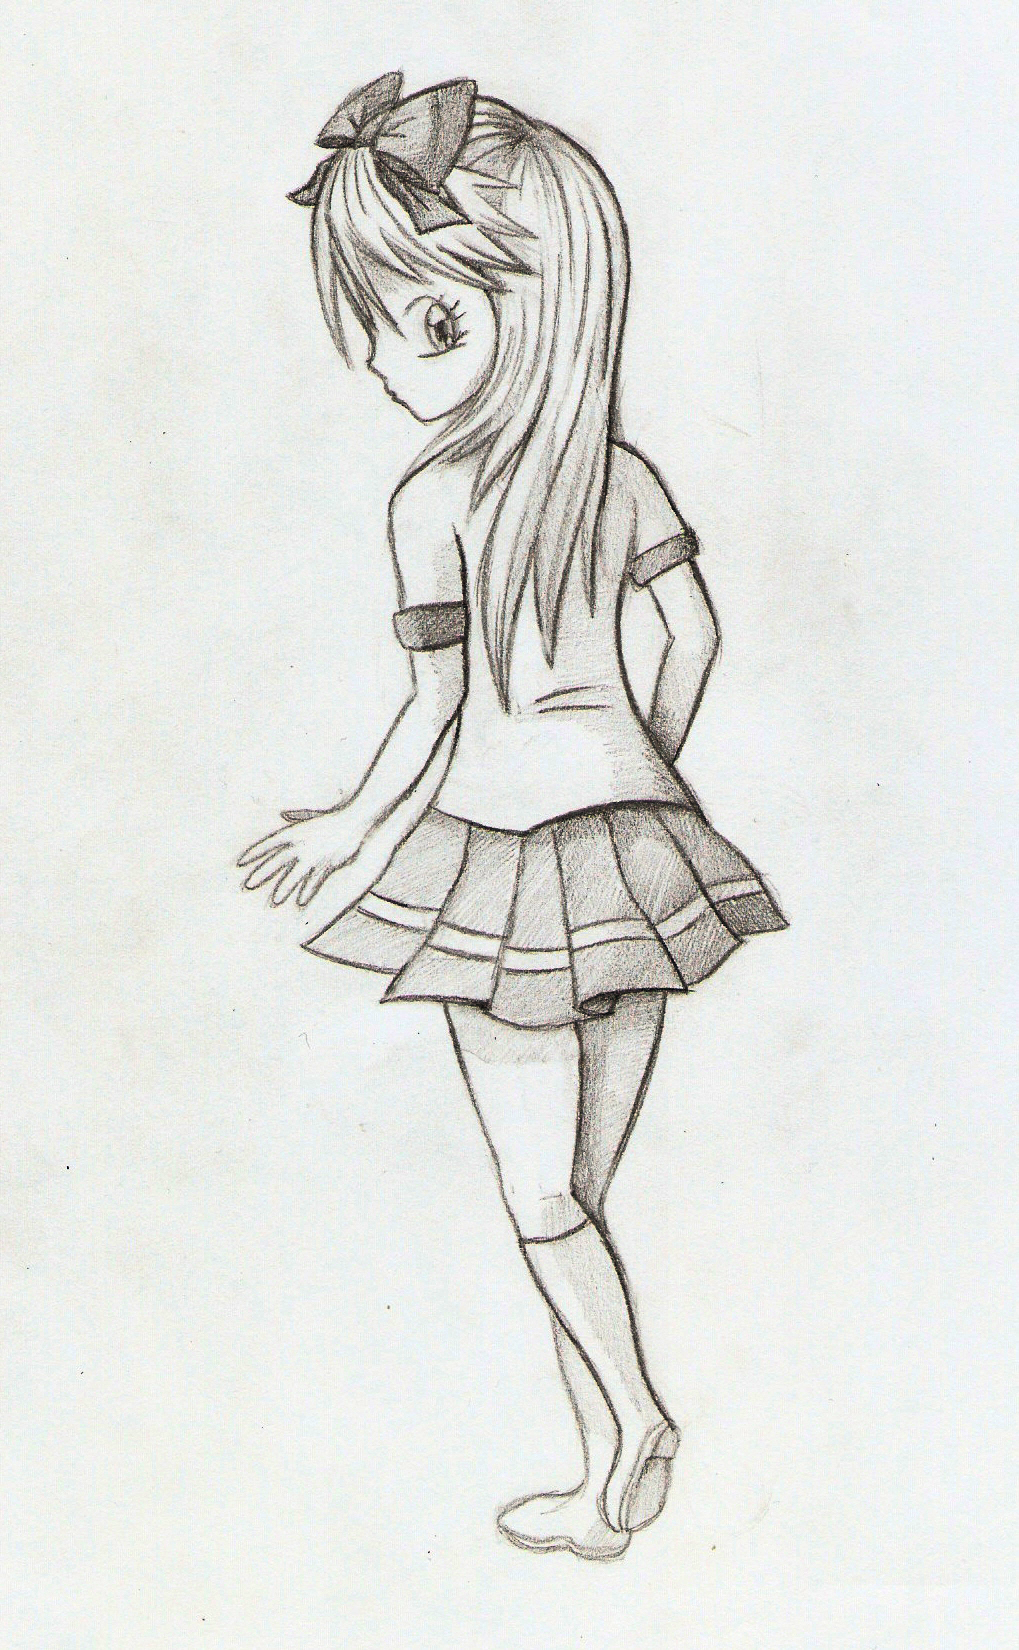 Anime Girl Back By Zero-Rtist On DeviantArt